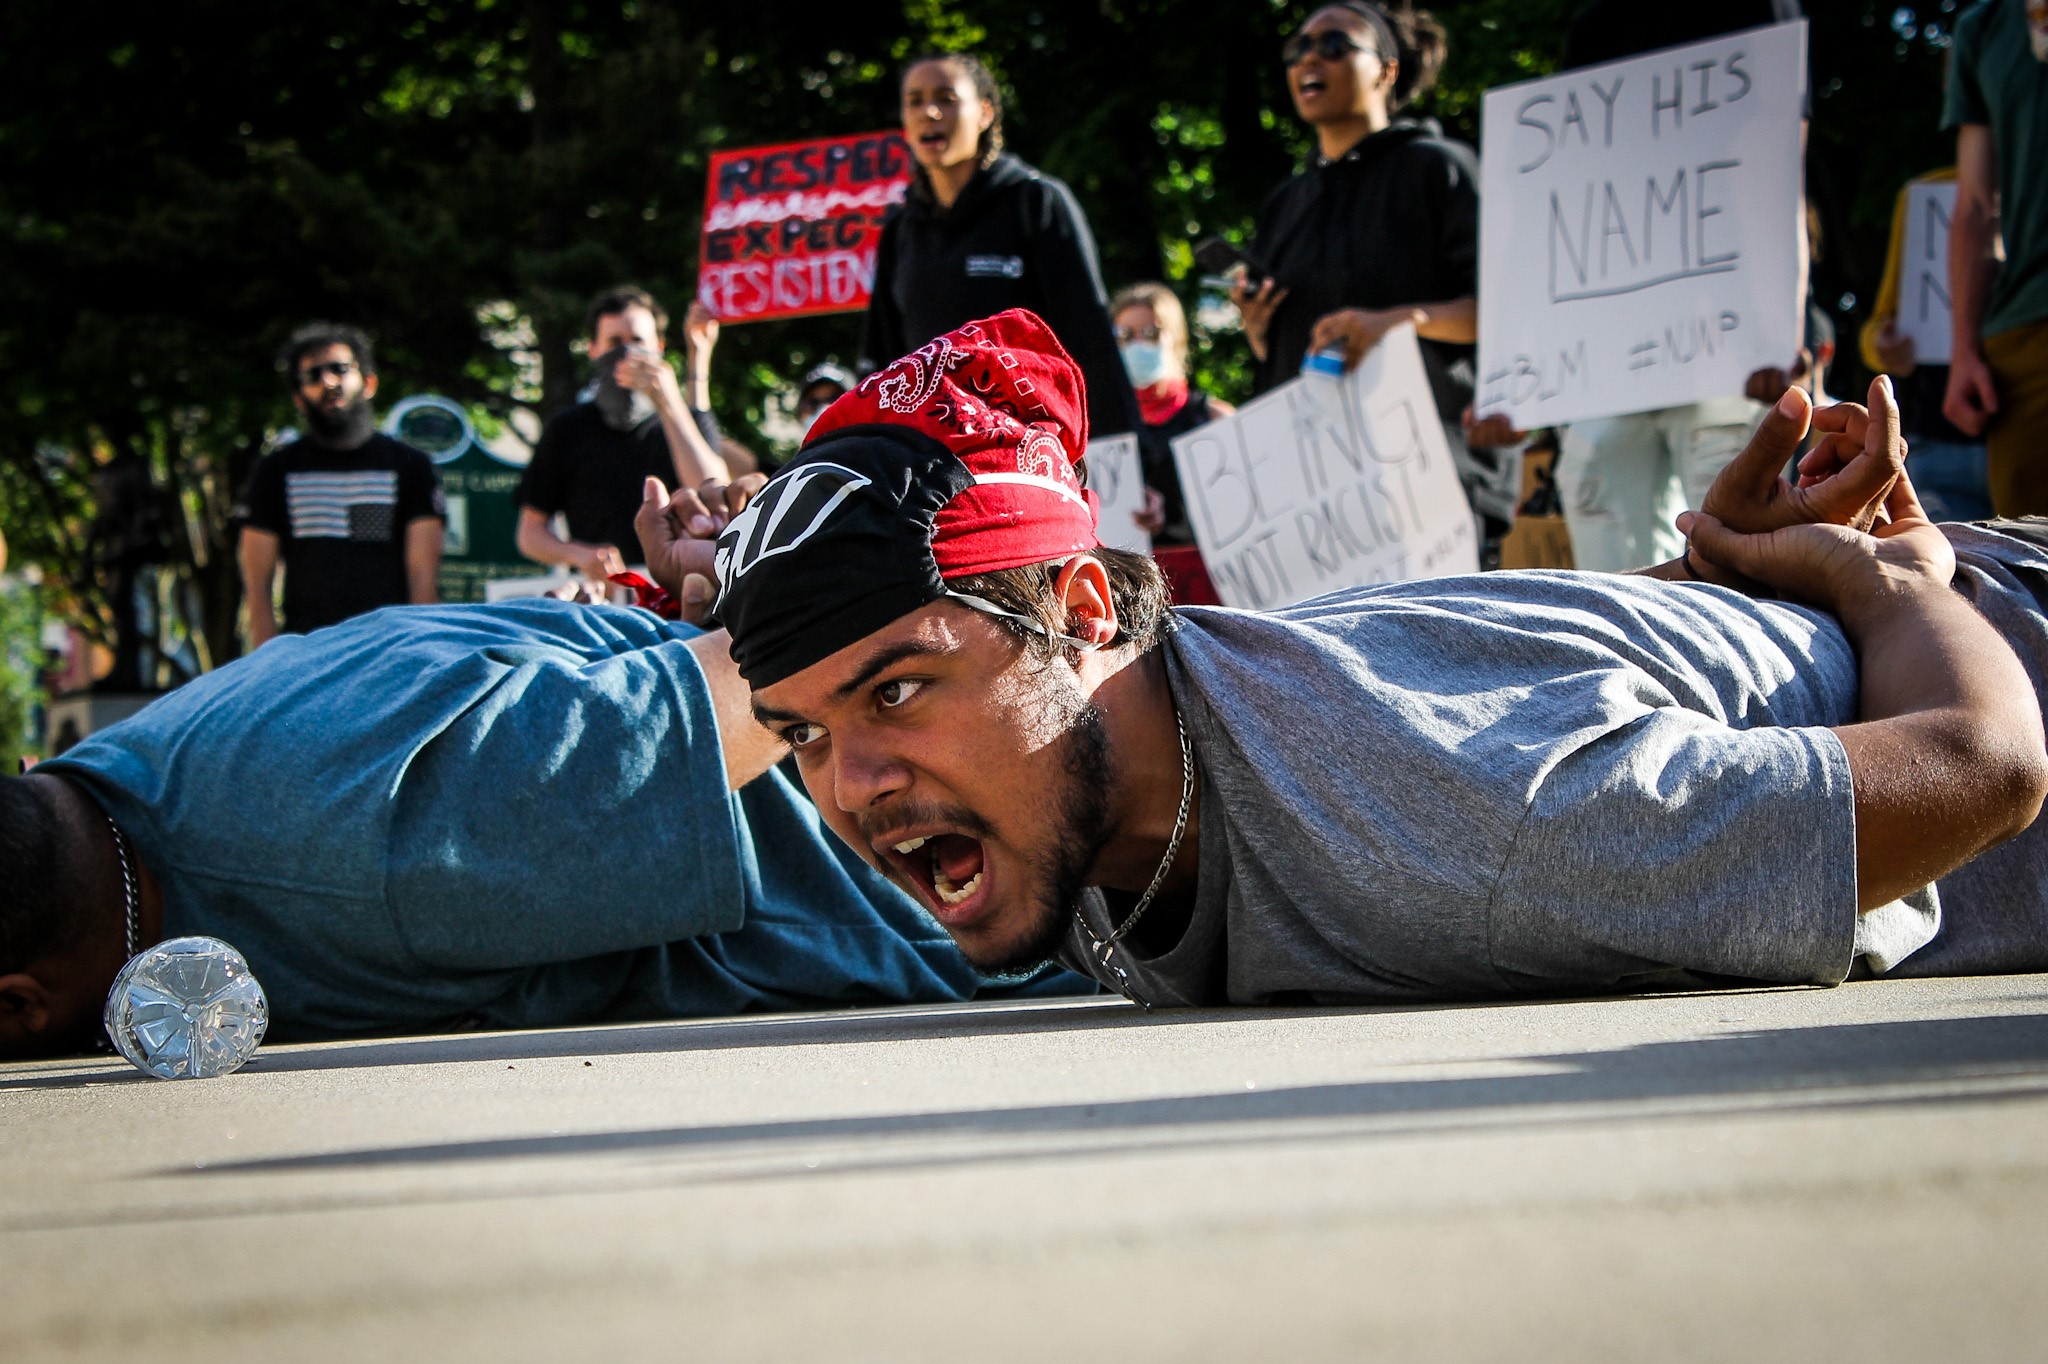 Protesters lay on the ground for nine minutes while chanting in Lansing.{&nbsp;}{&nbsp;}(WWMT/Mikenzie Frost)<p></p>